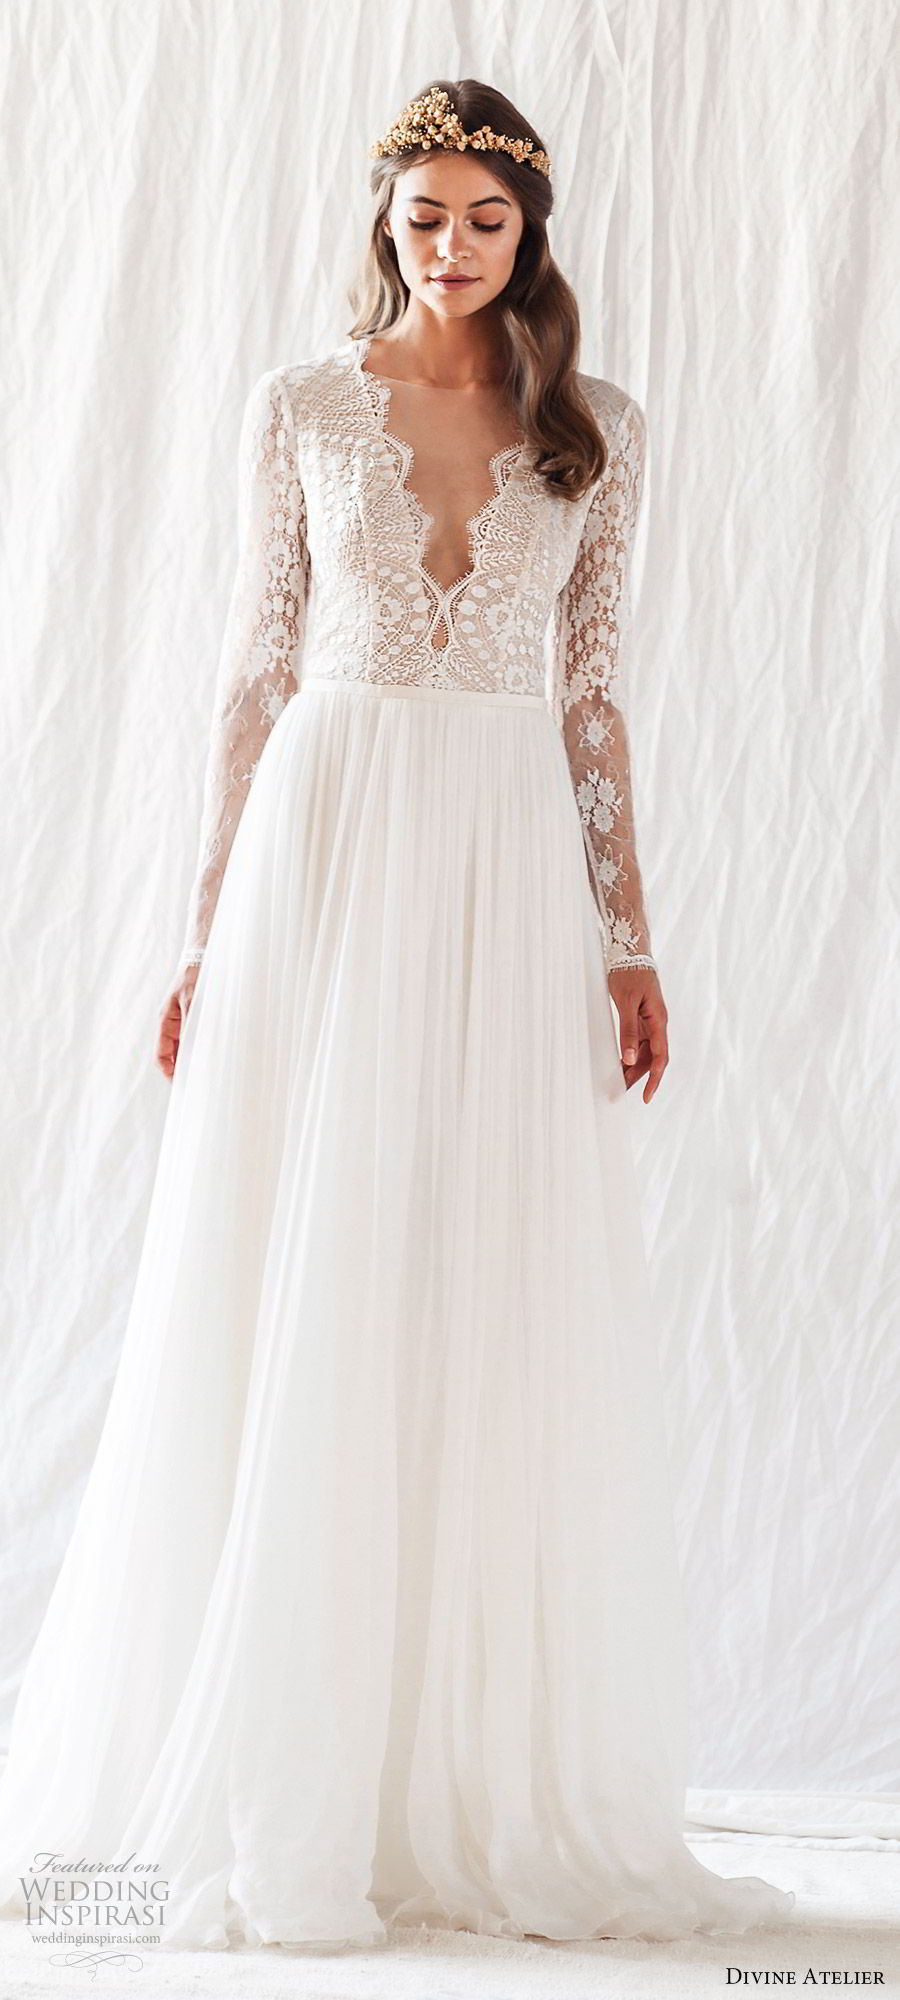 divine atelier 2019 bridal illusion long sleeves plunging v neckline lace bodice wedding dress (14) sweep train cutout back romantic princess mv